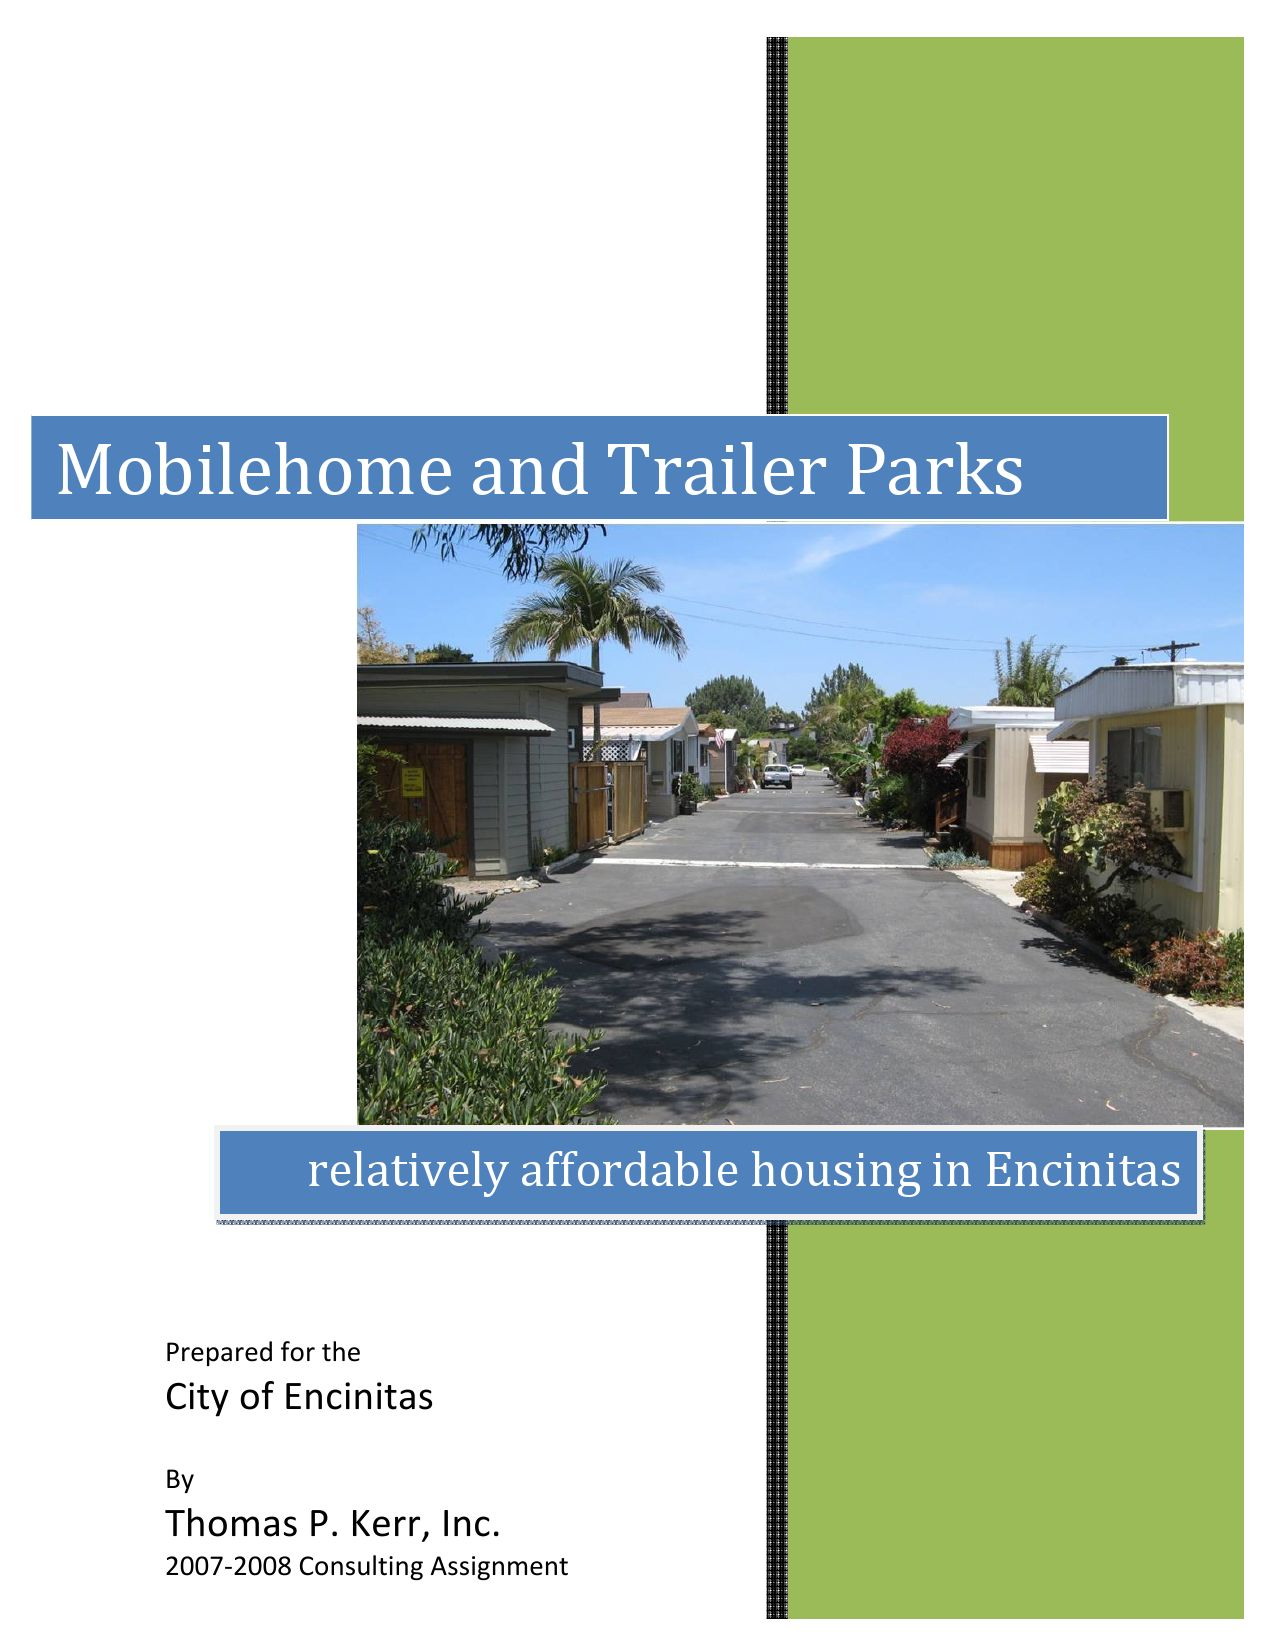 Encinitas Mobilehome And Trailer Park Study